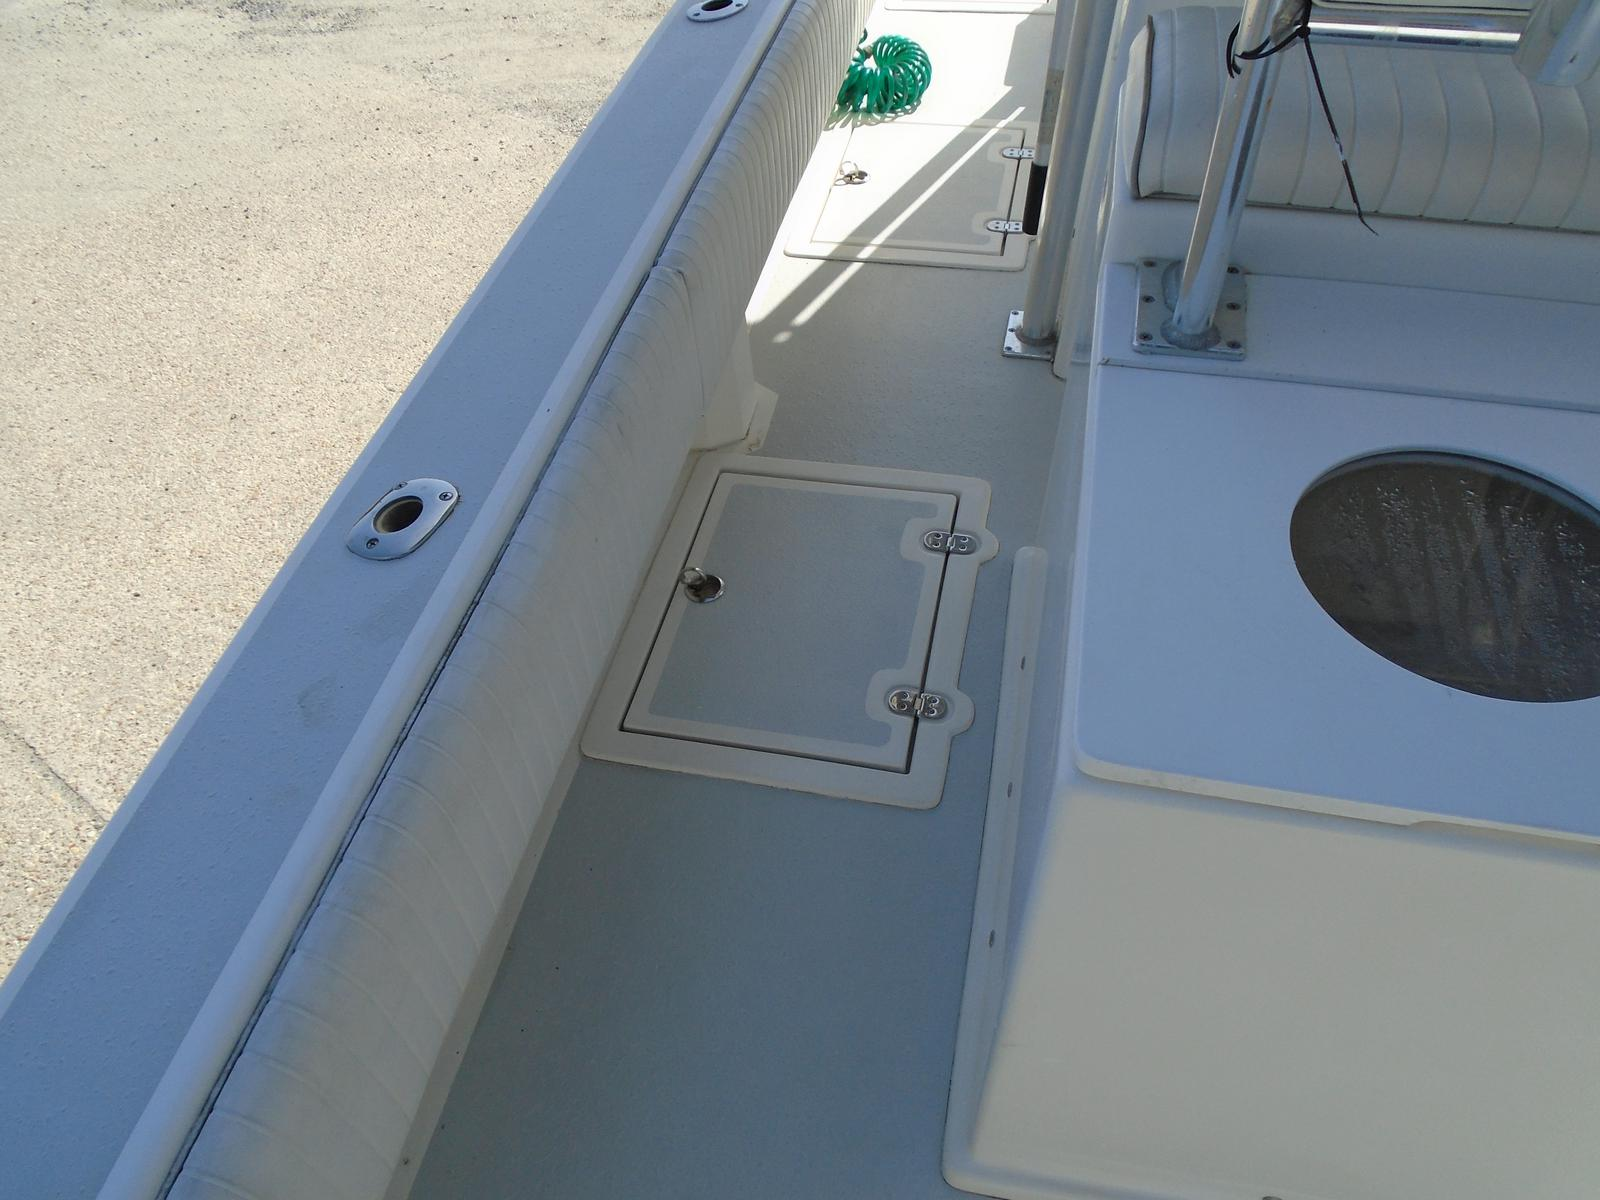 2007 Sabalo boat for sale, model of the boat is 41 Custom CC & Image # 11 of 50